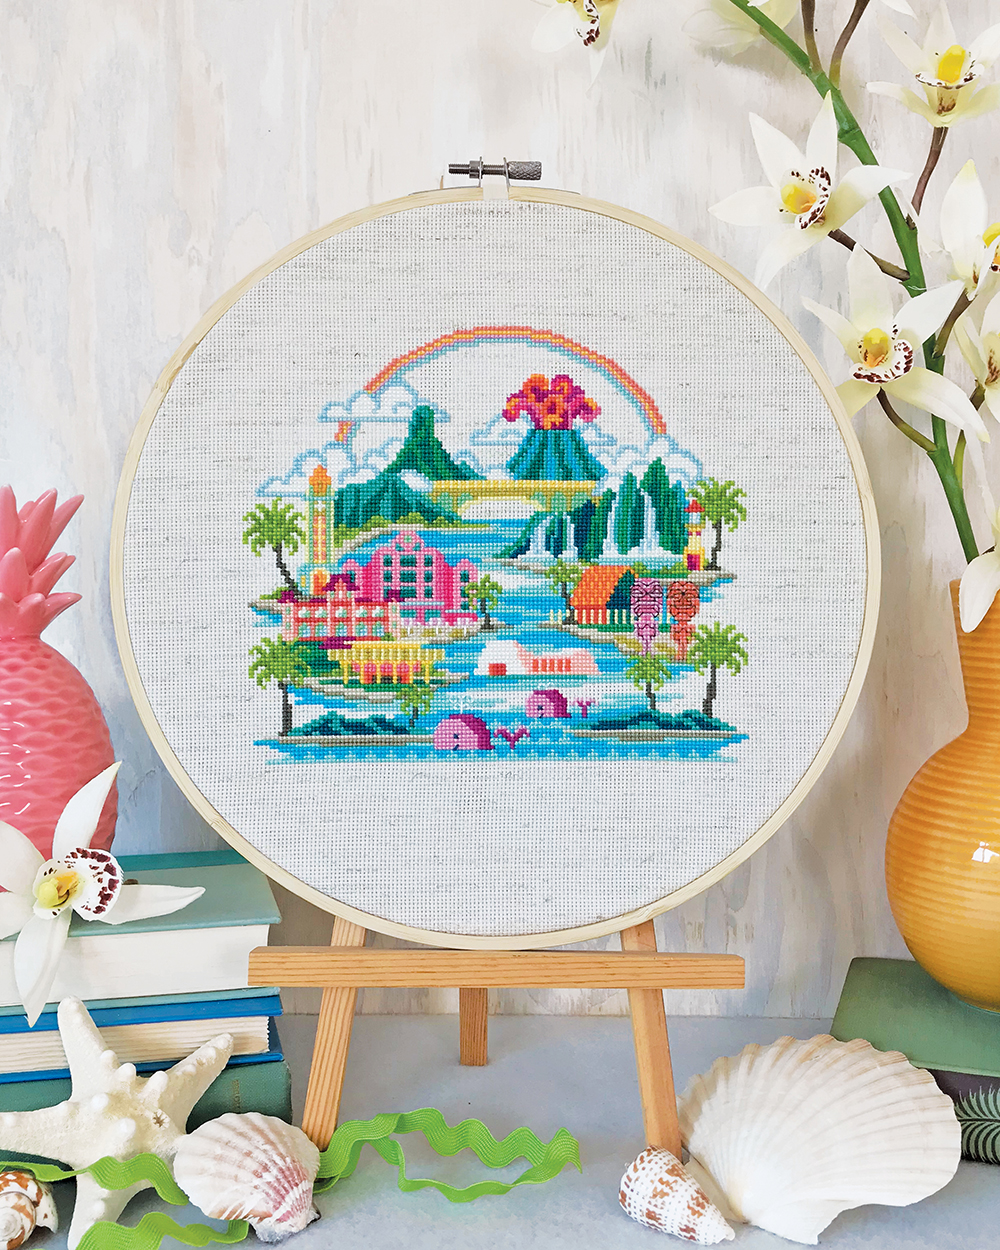 Put down that Mai Tai, you've got stitching to do!